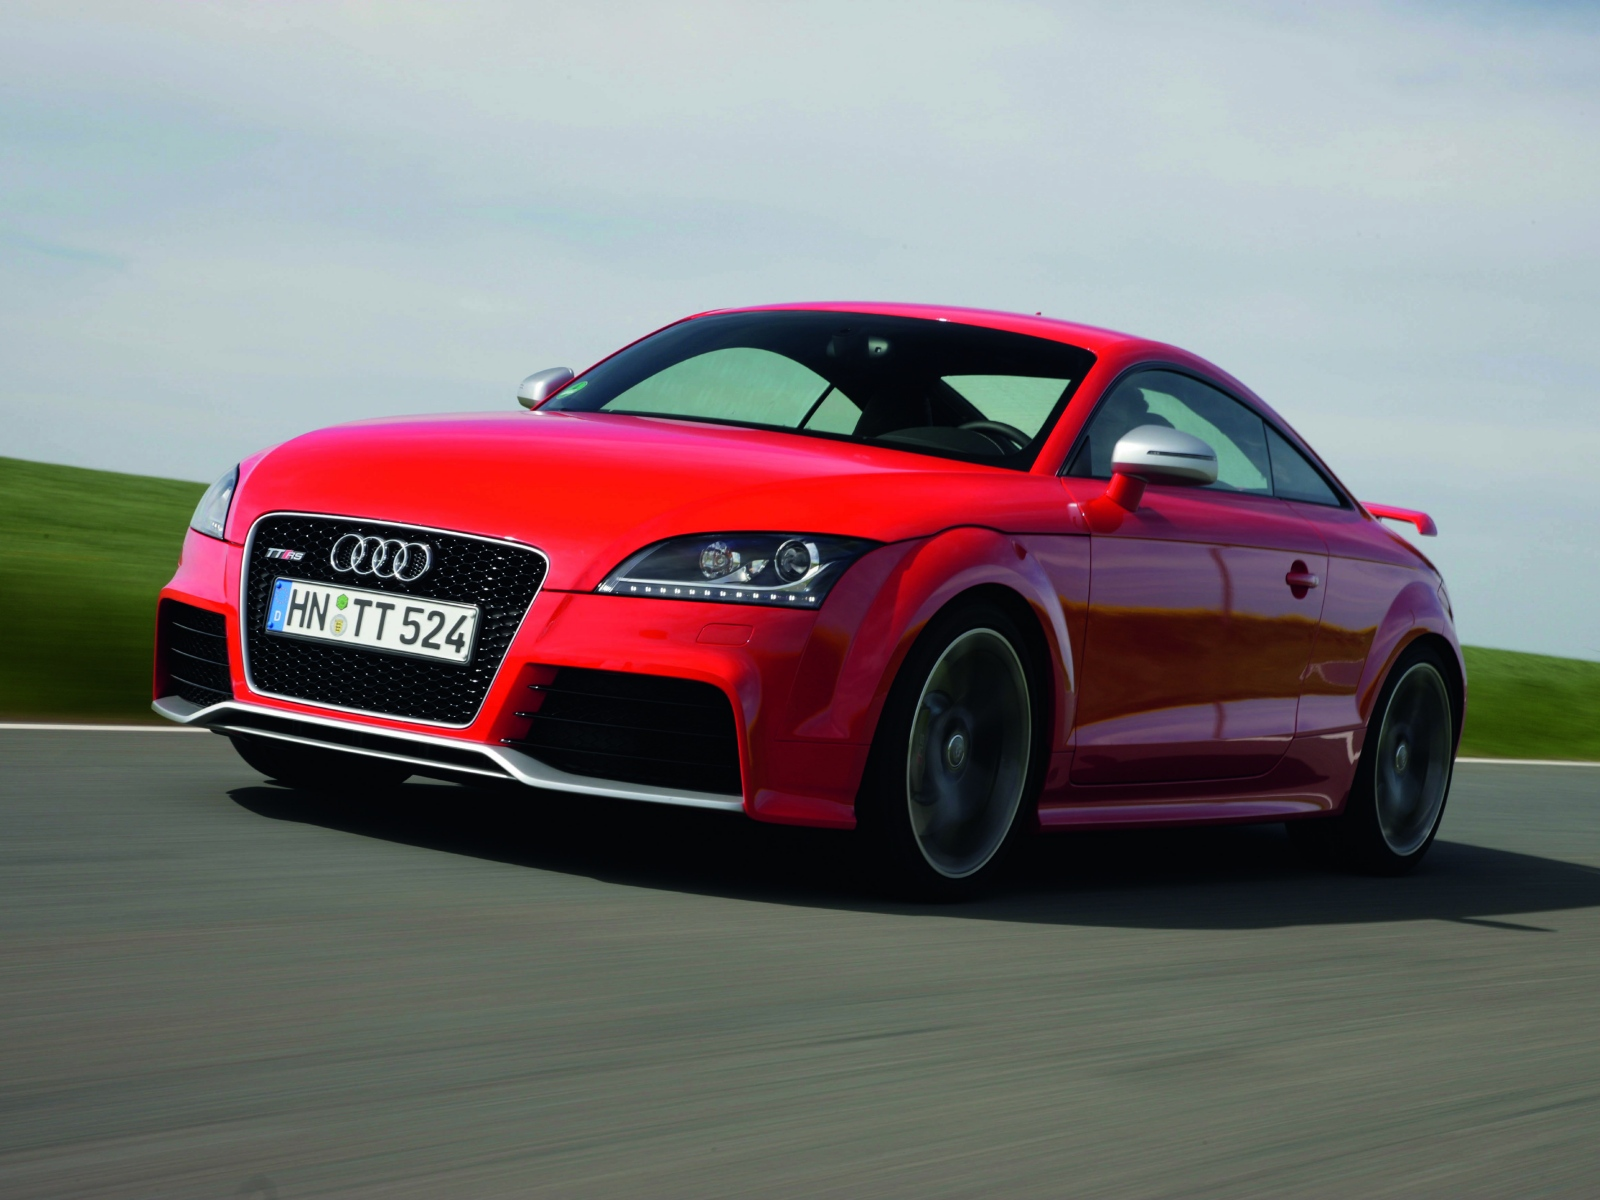 2010 audi tt rs coupe wallpapers pictures specifications interiors and exteriors images. Black Bedroom Furniture Sets. Home Design Ideas